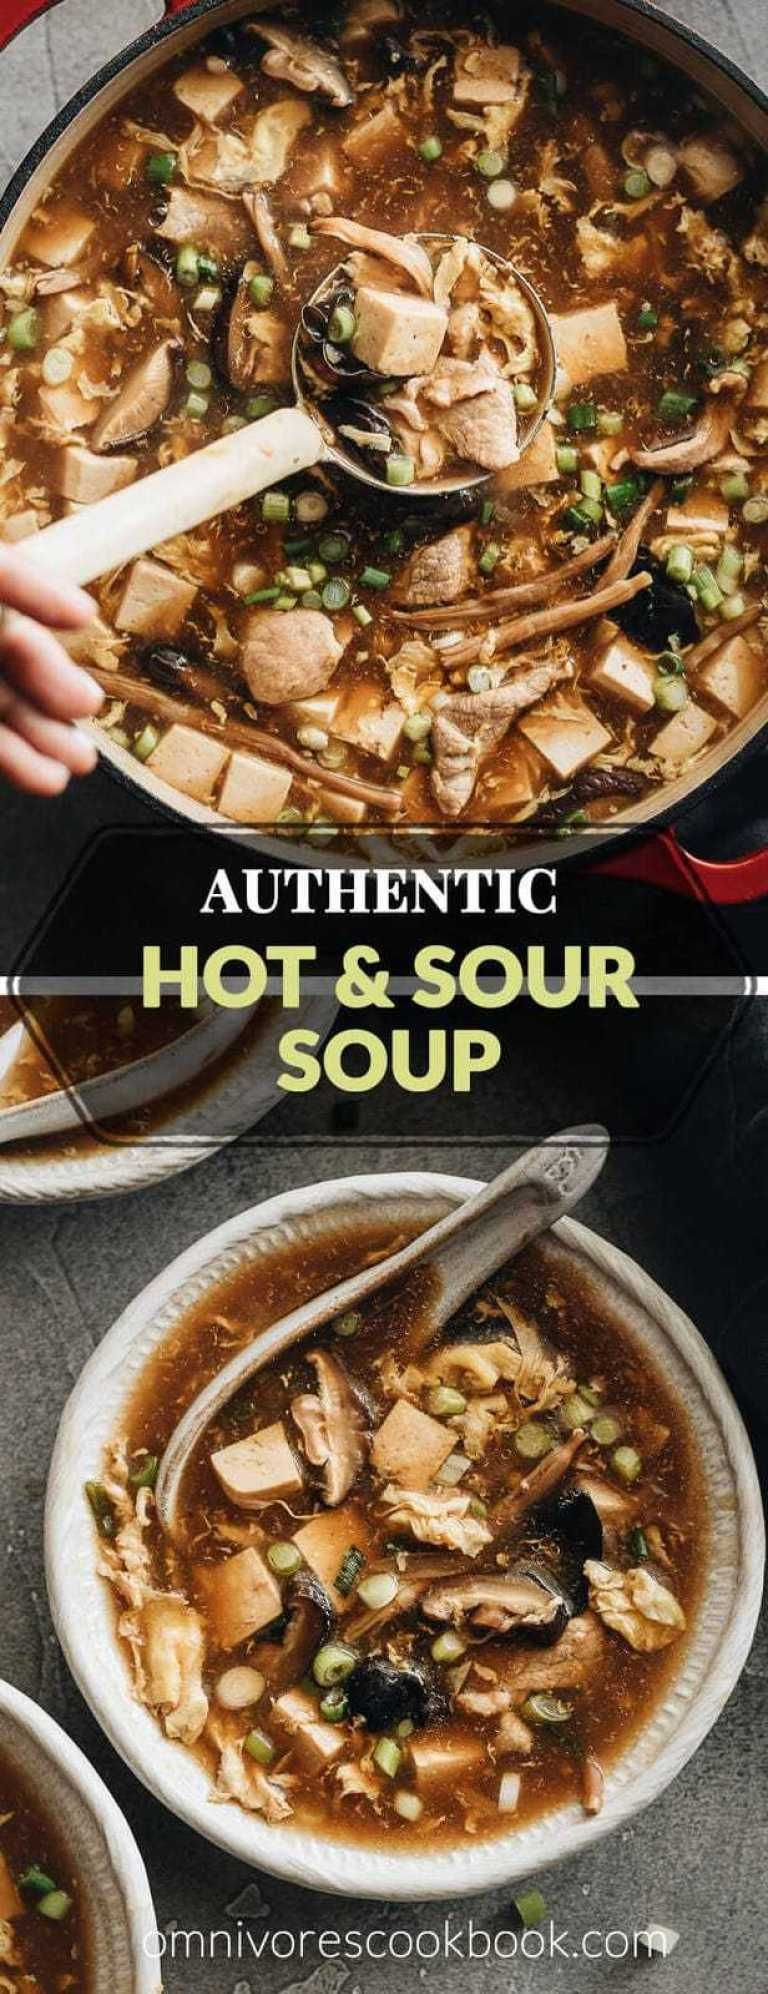 Authentic Hot and Sour Soup (酸辣汤)   Omnivore's Cookbook